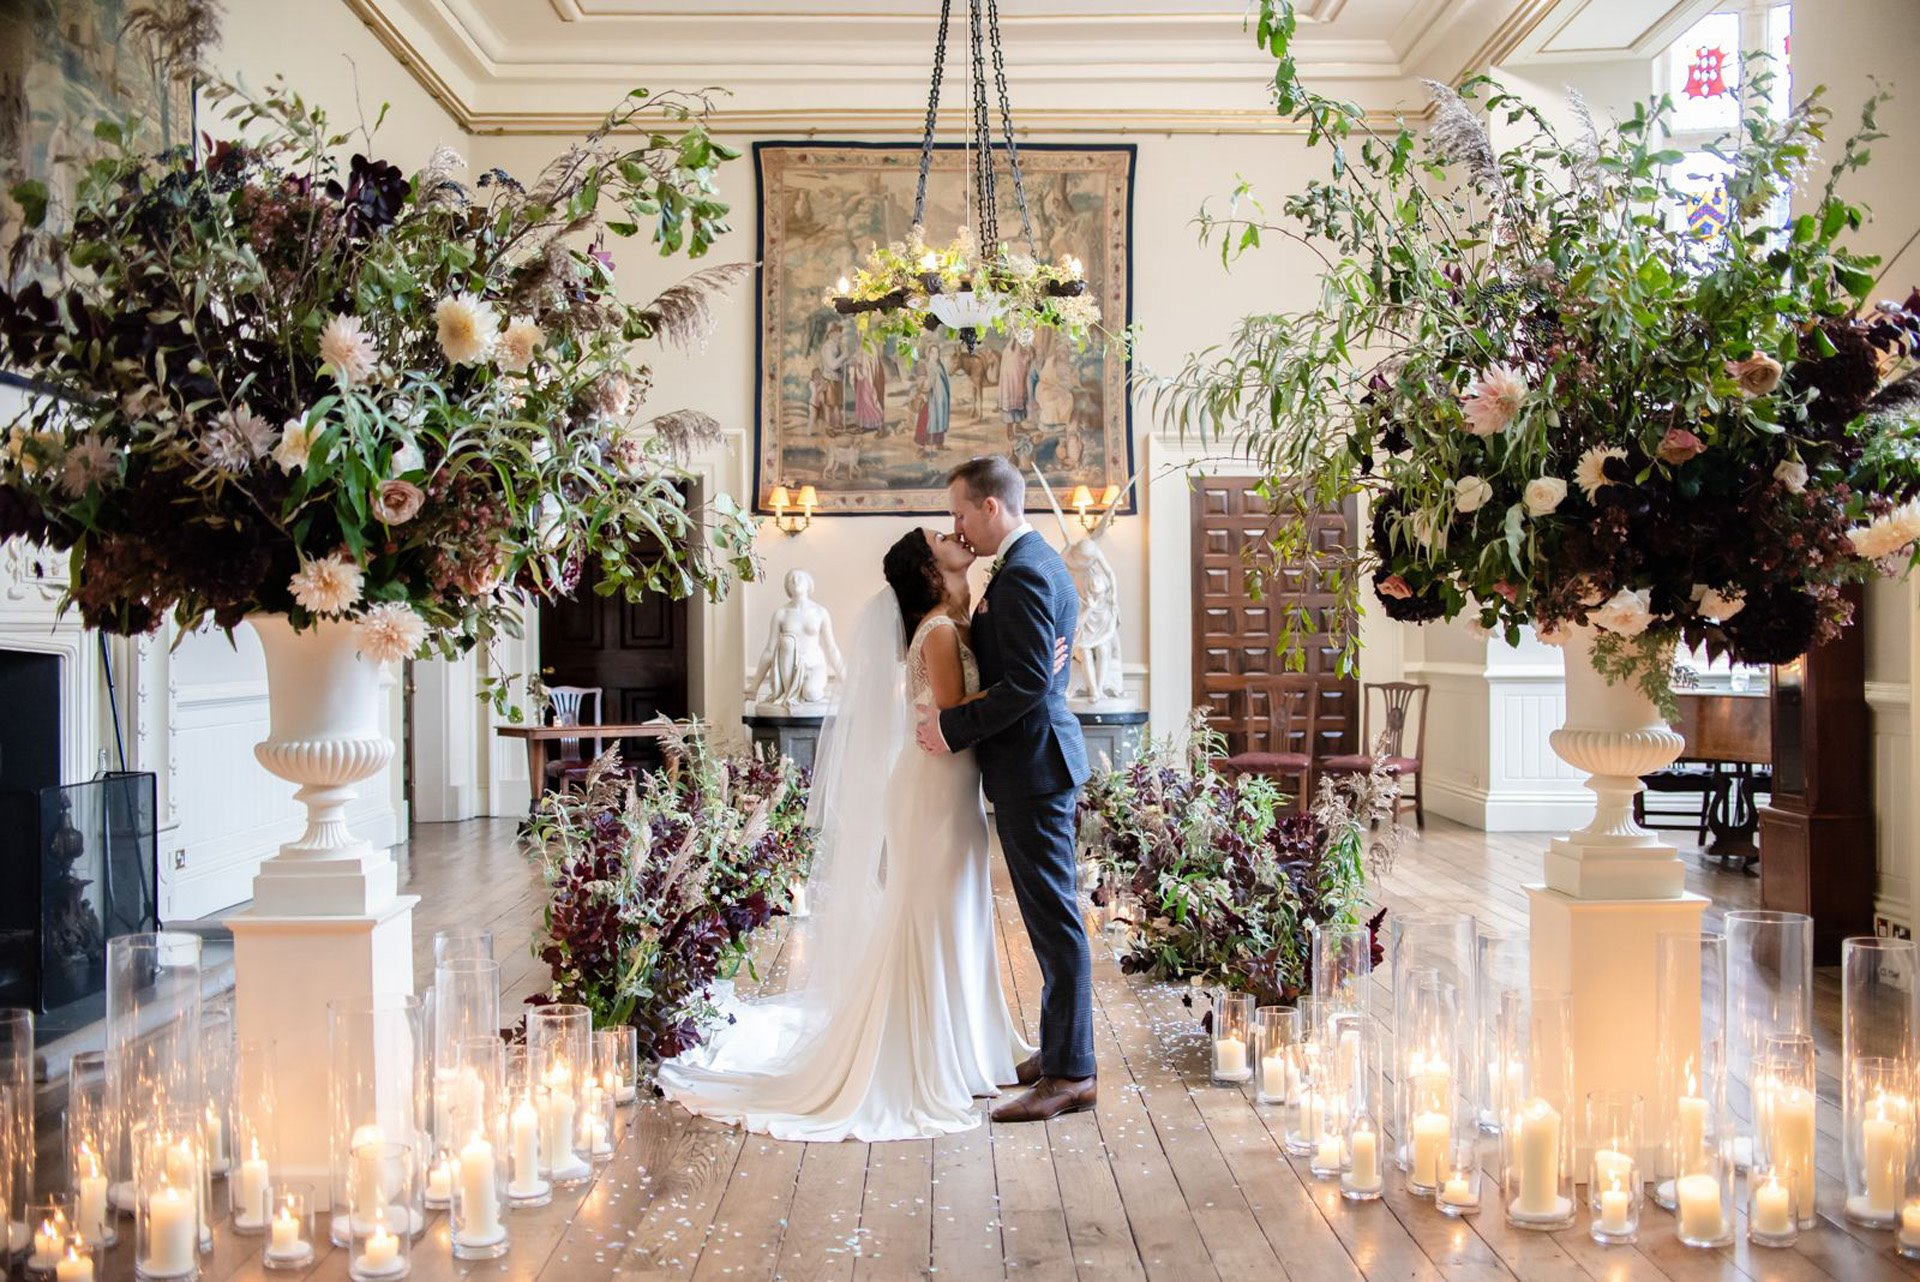 Real life micro wedding inspiration from Autumn 10